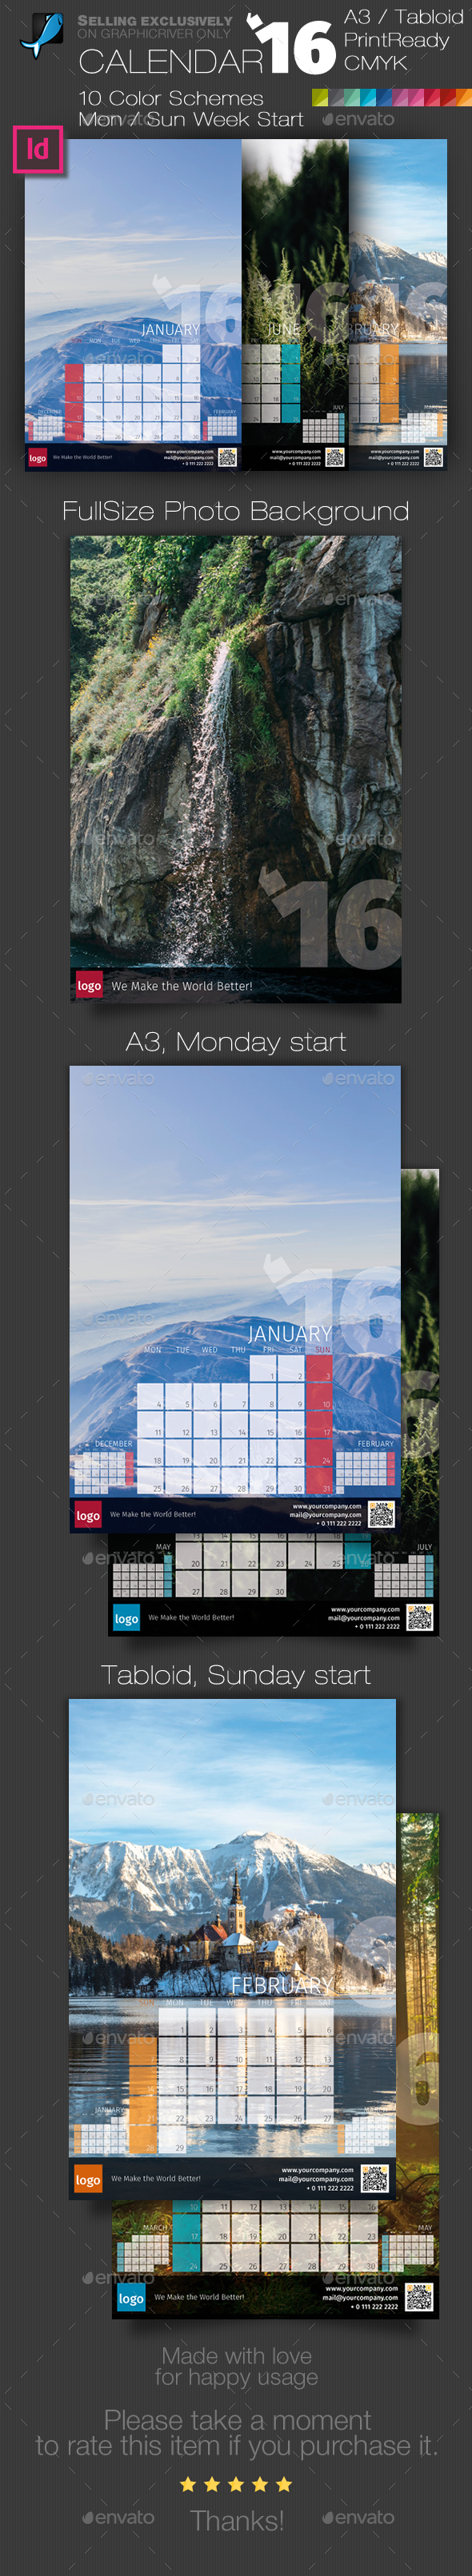 Wall Calendar 2018 with Full Size Photo Background — A3 and Tabloid ...